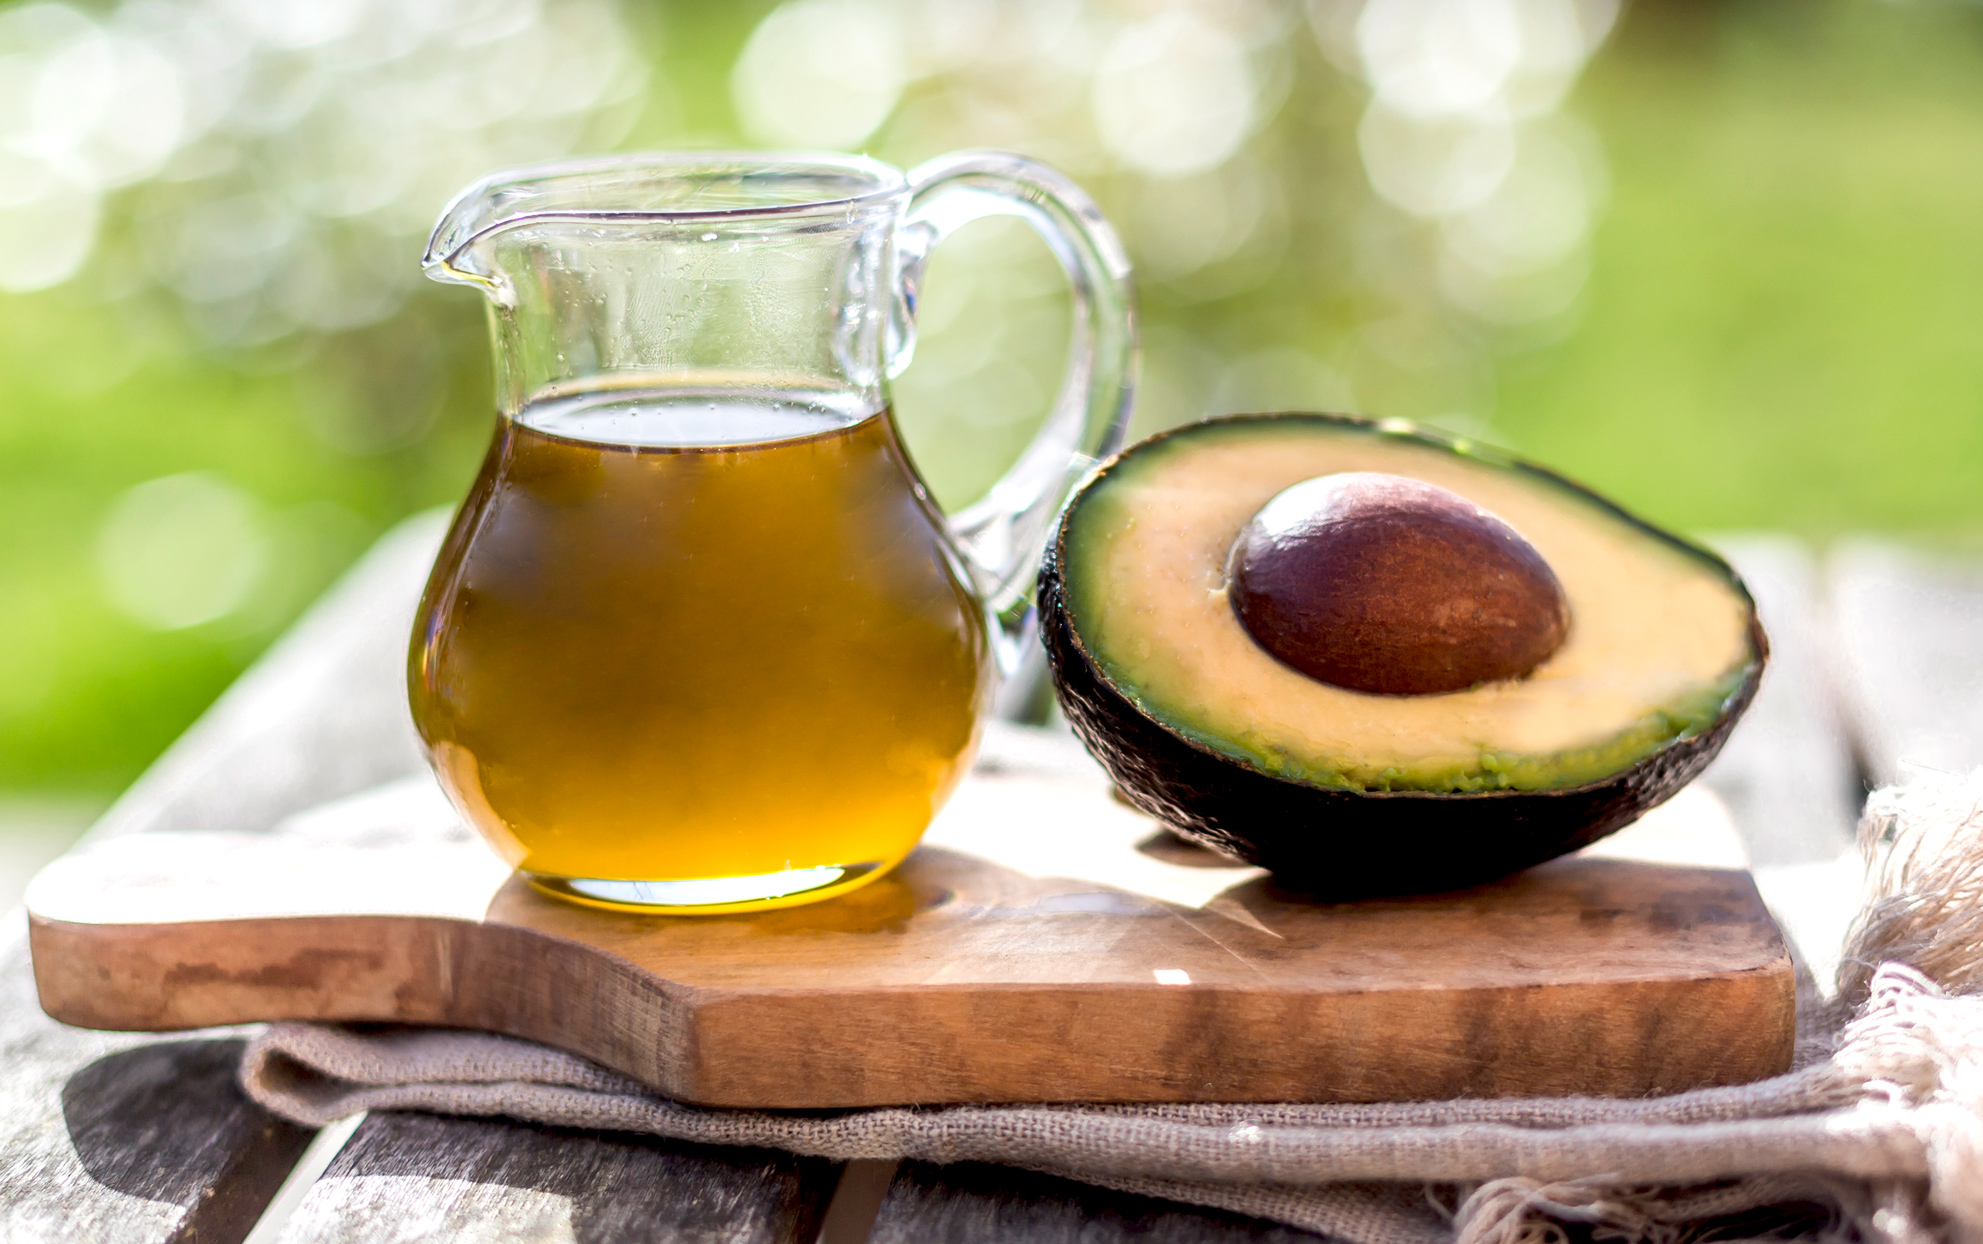 avocado and avocado oil on a cutting board outdoors